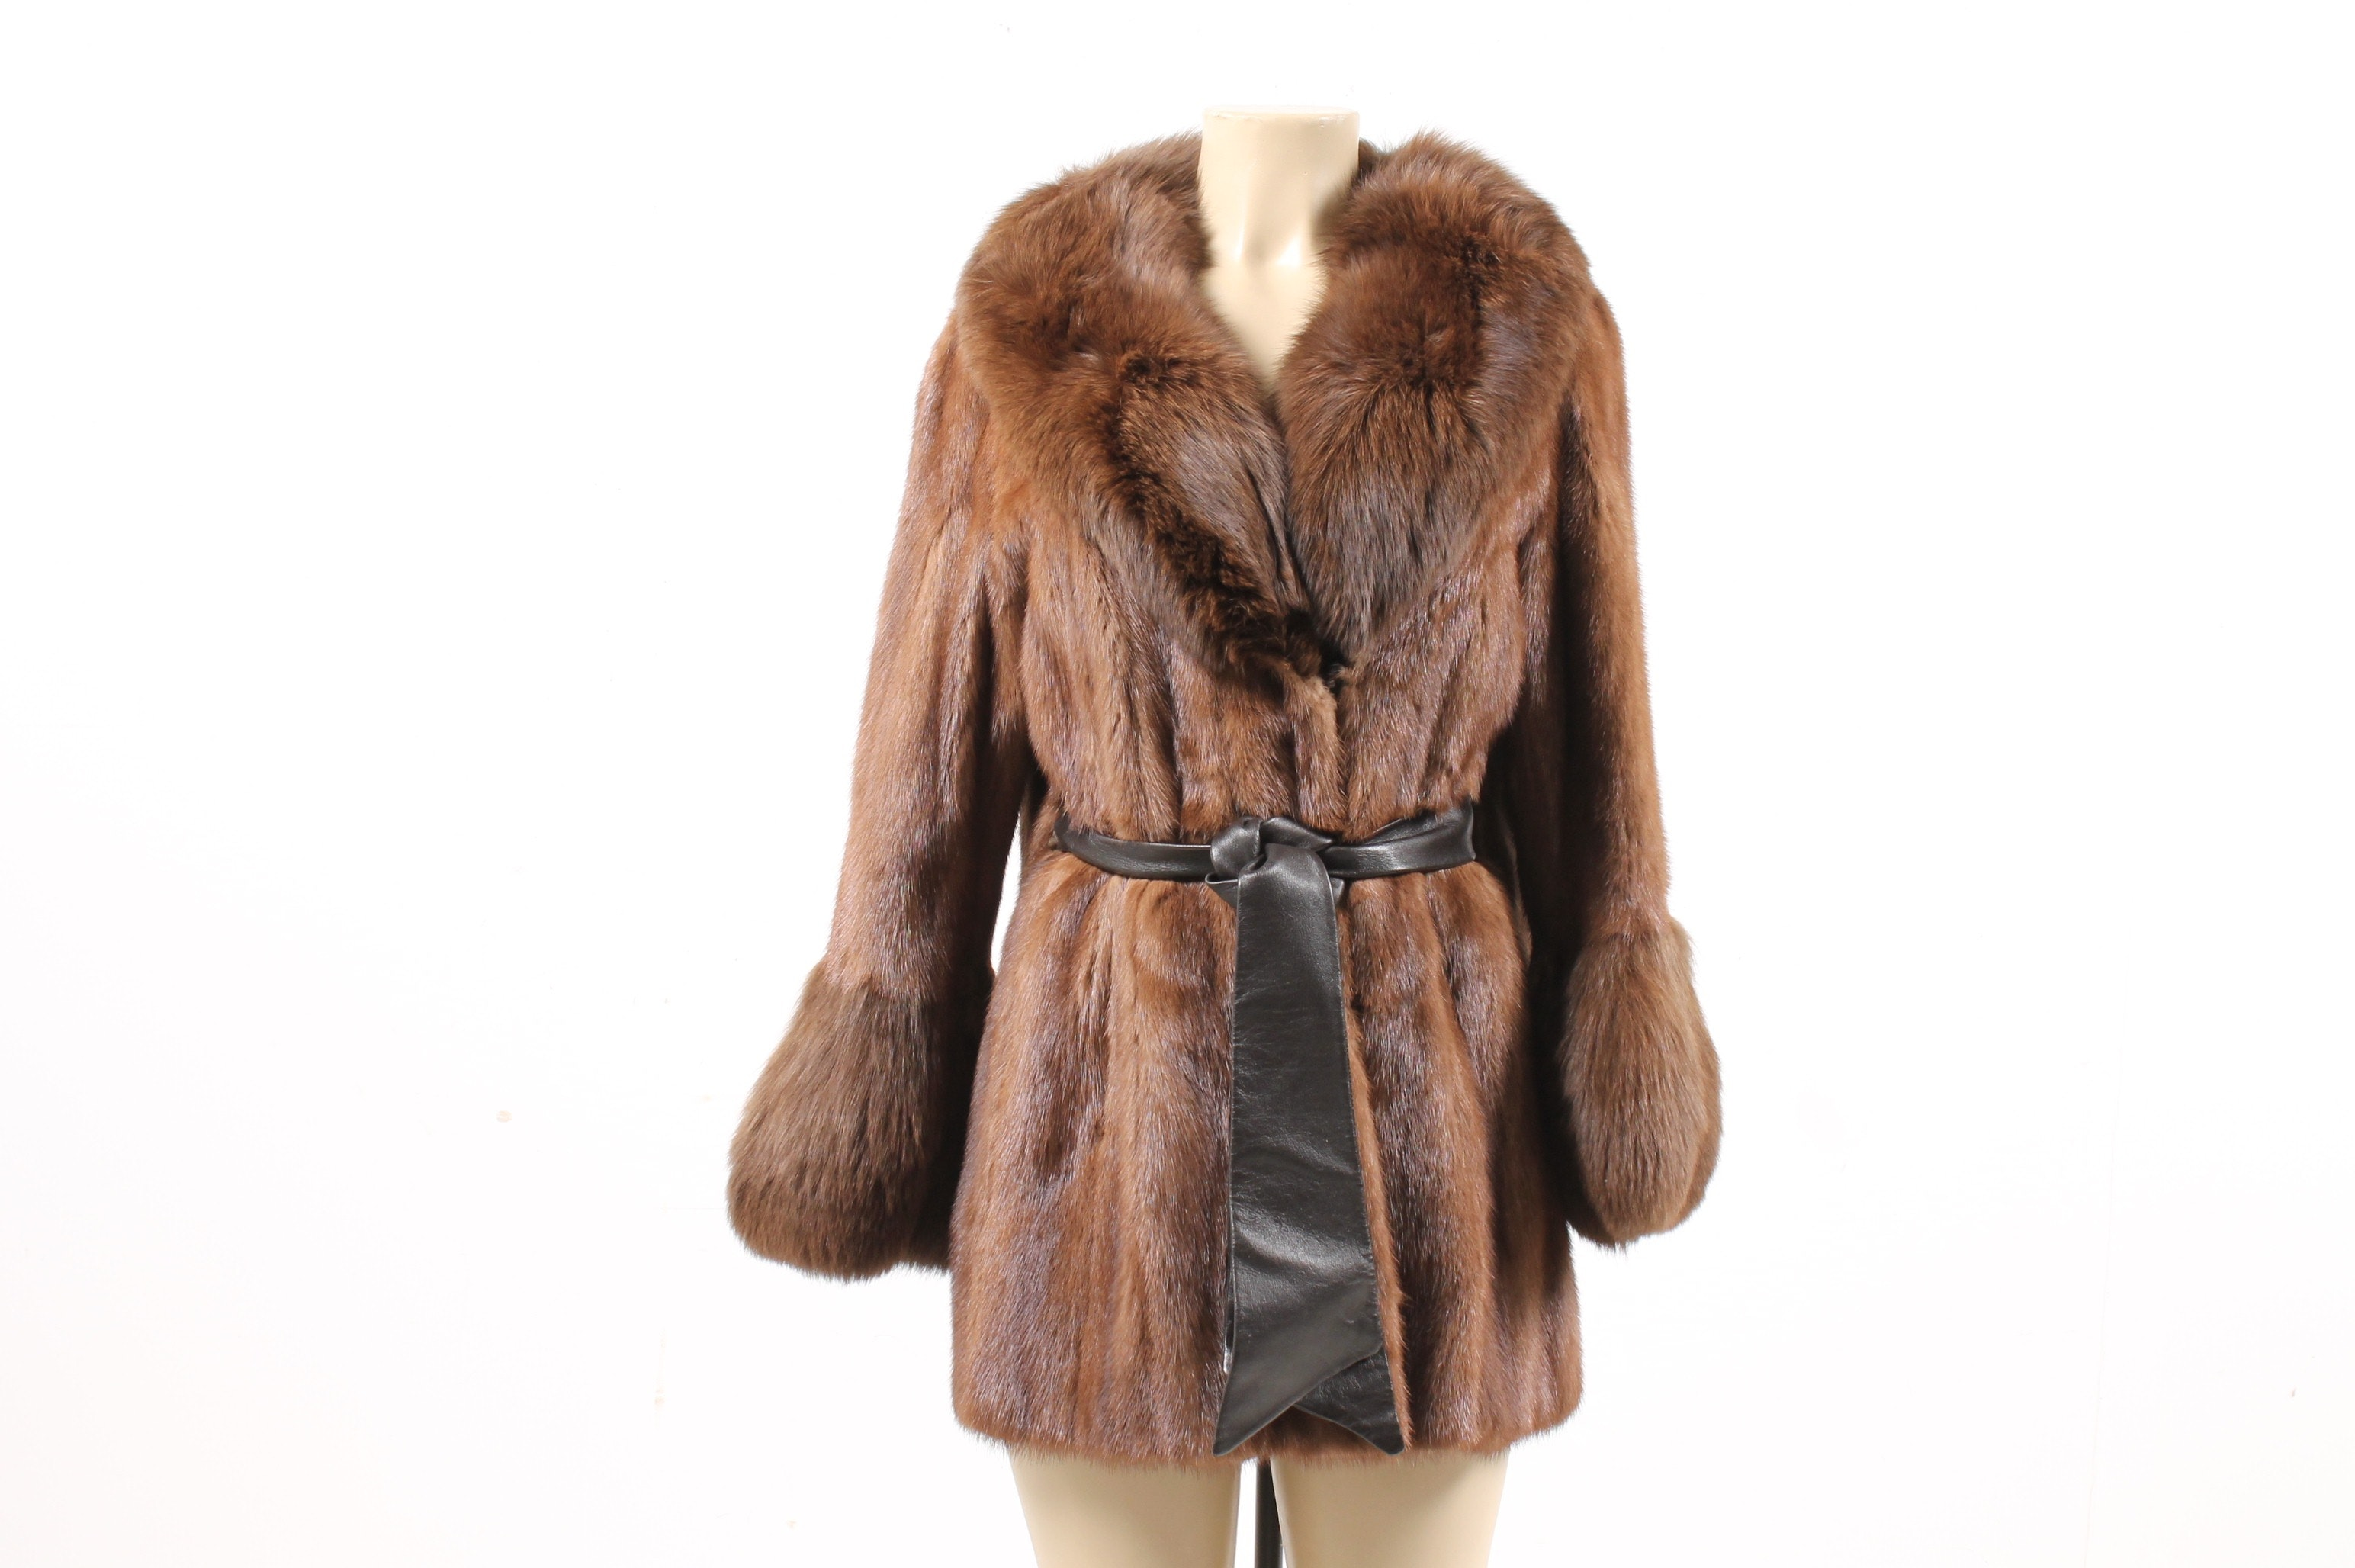 Vintage Mink Fur Coat Trimmed in Fox Fur with Leather Tie Belt